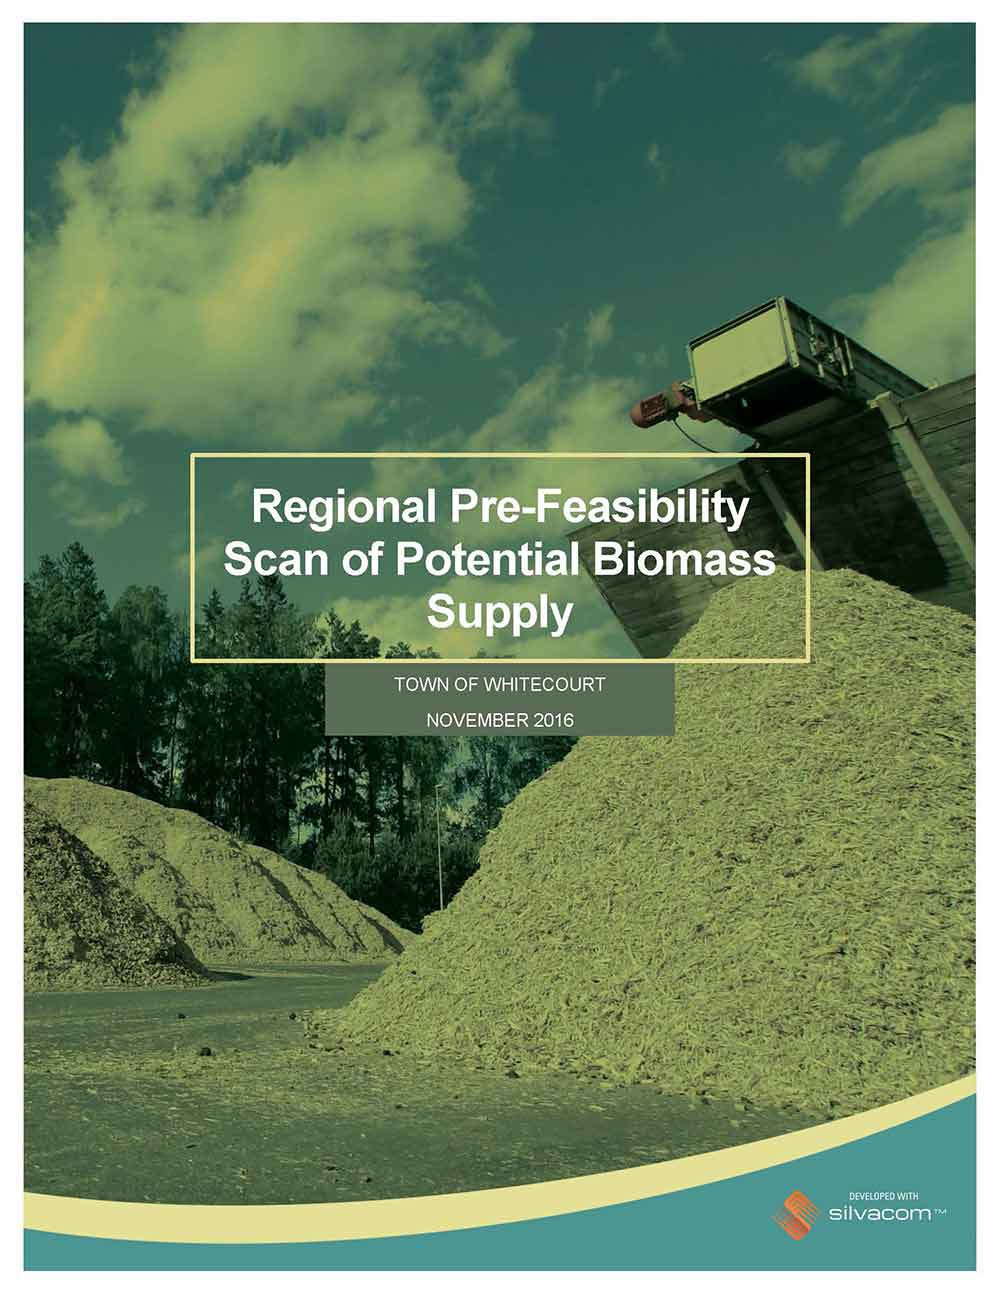 Pre-Feasibility-Scan-of-Potential-Biomass-Supply_Whitecourt_Page_01